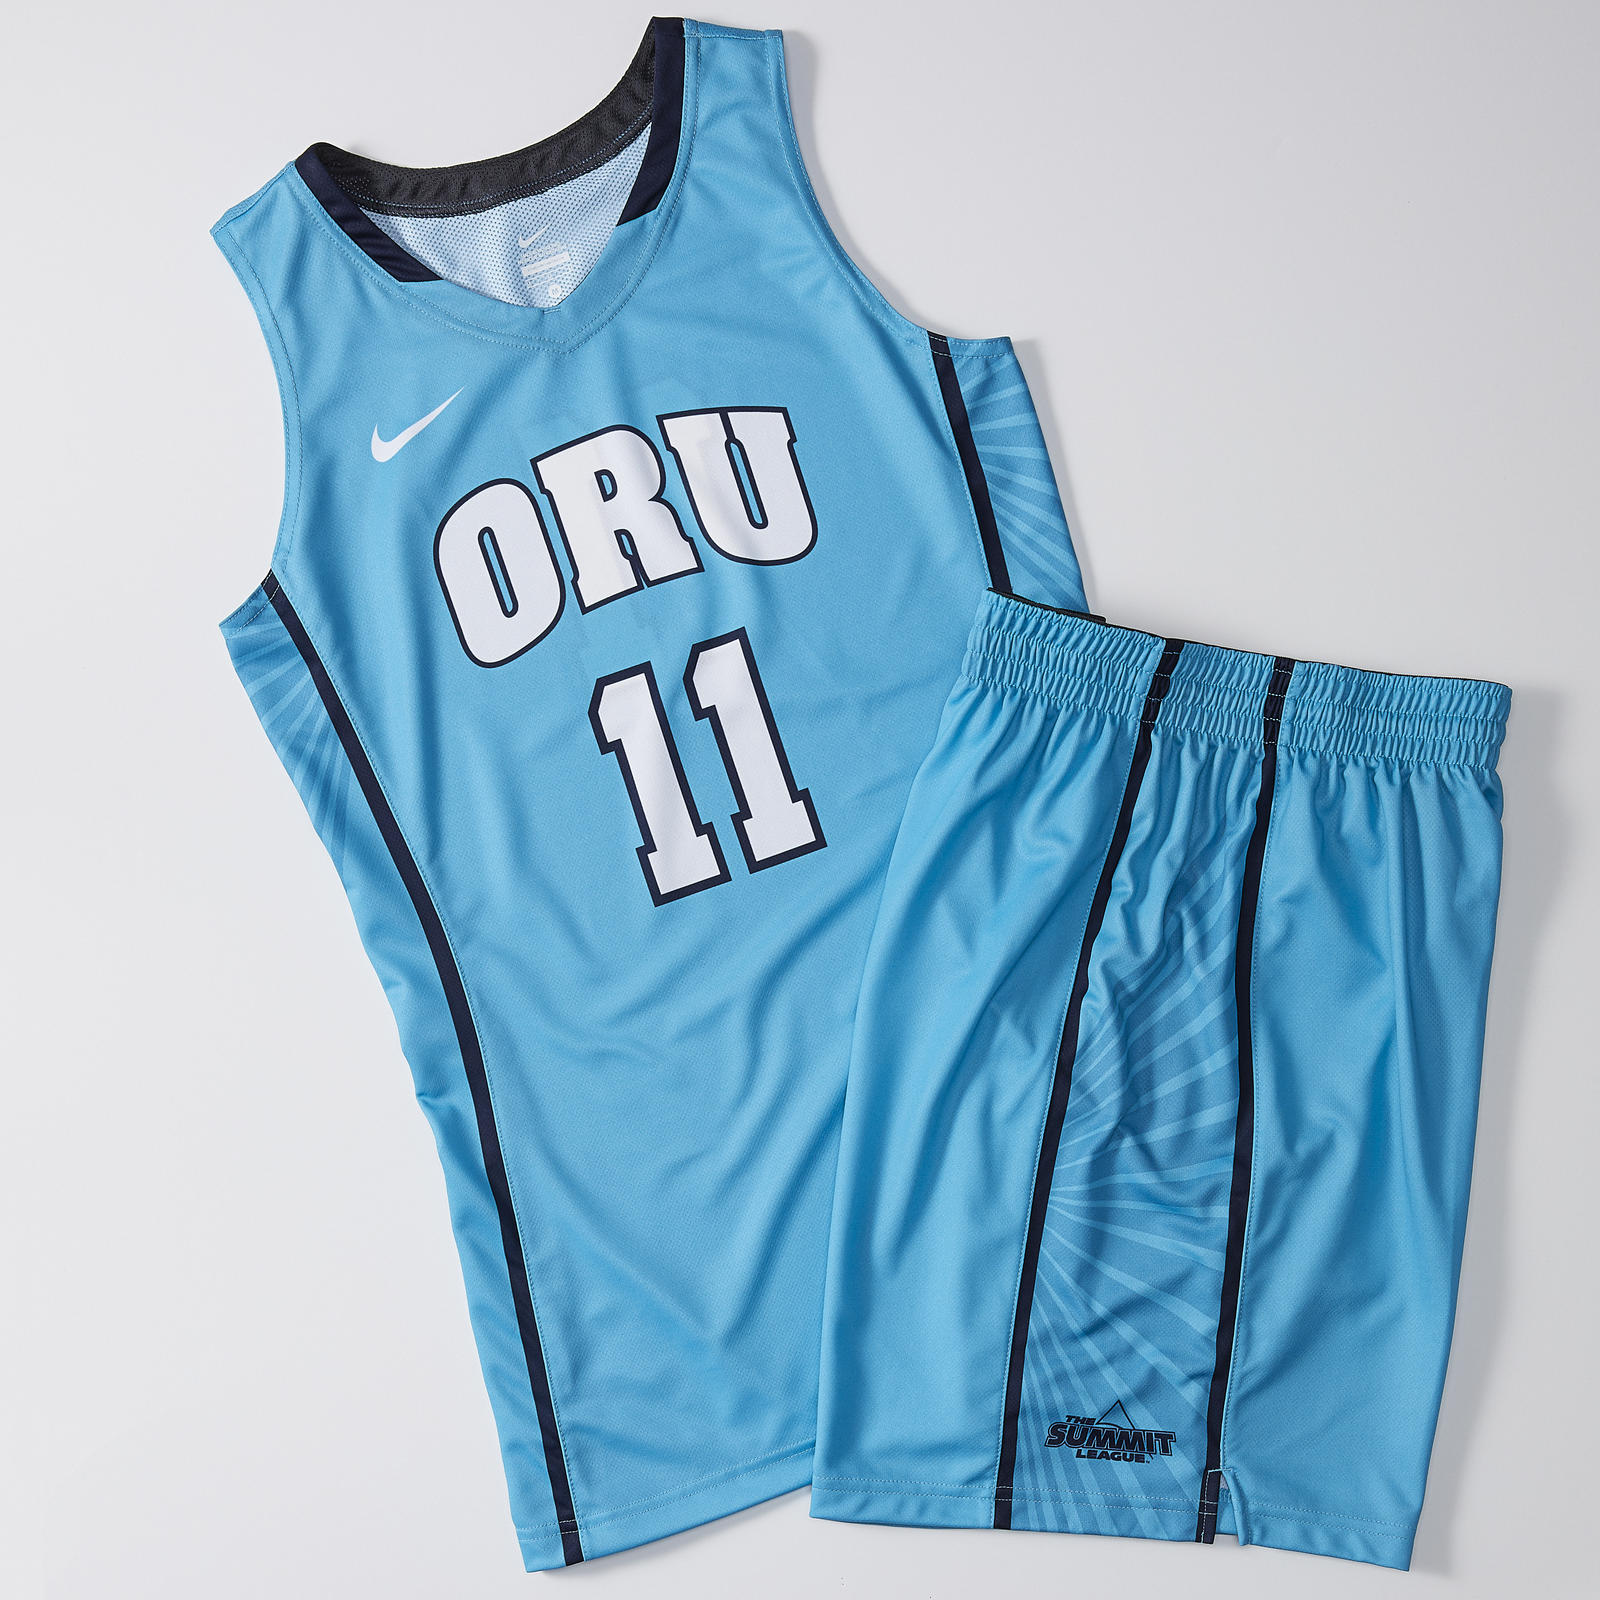 2e755caa3d1 The Nike N7 College Basketball Uniform  More Than a Turquoise Jersey 3